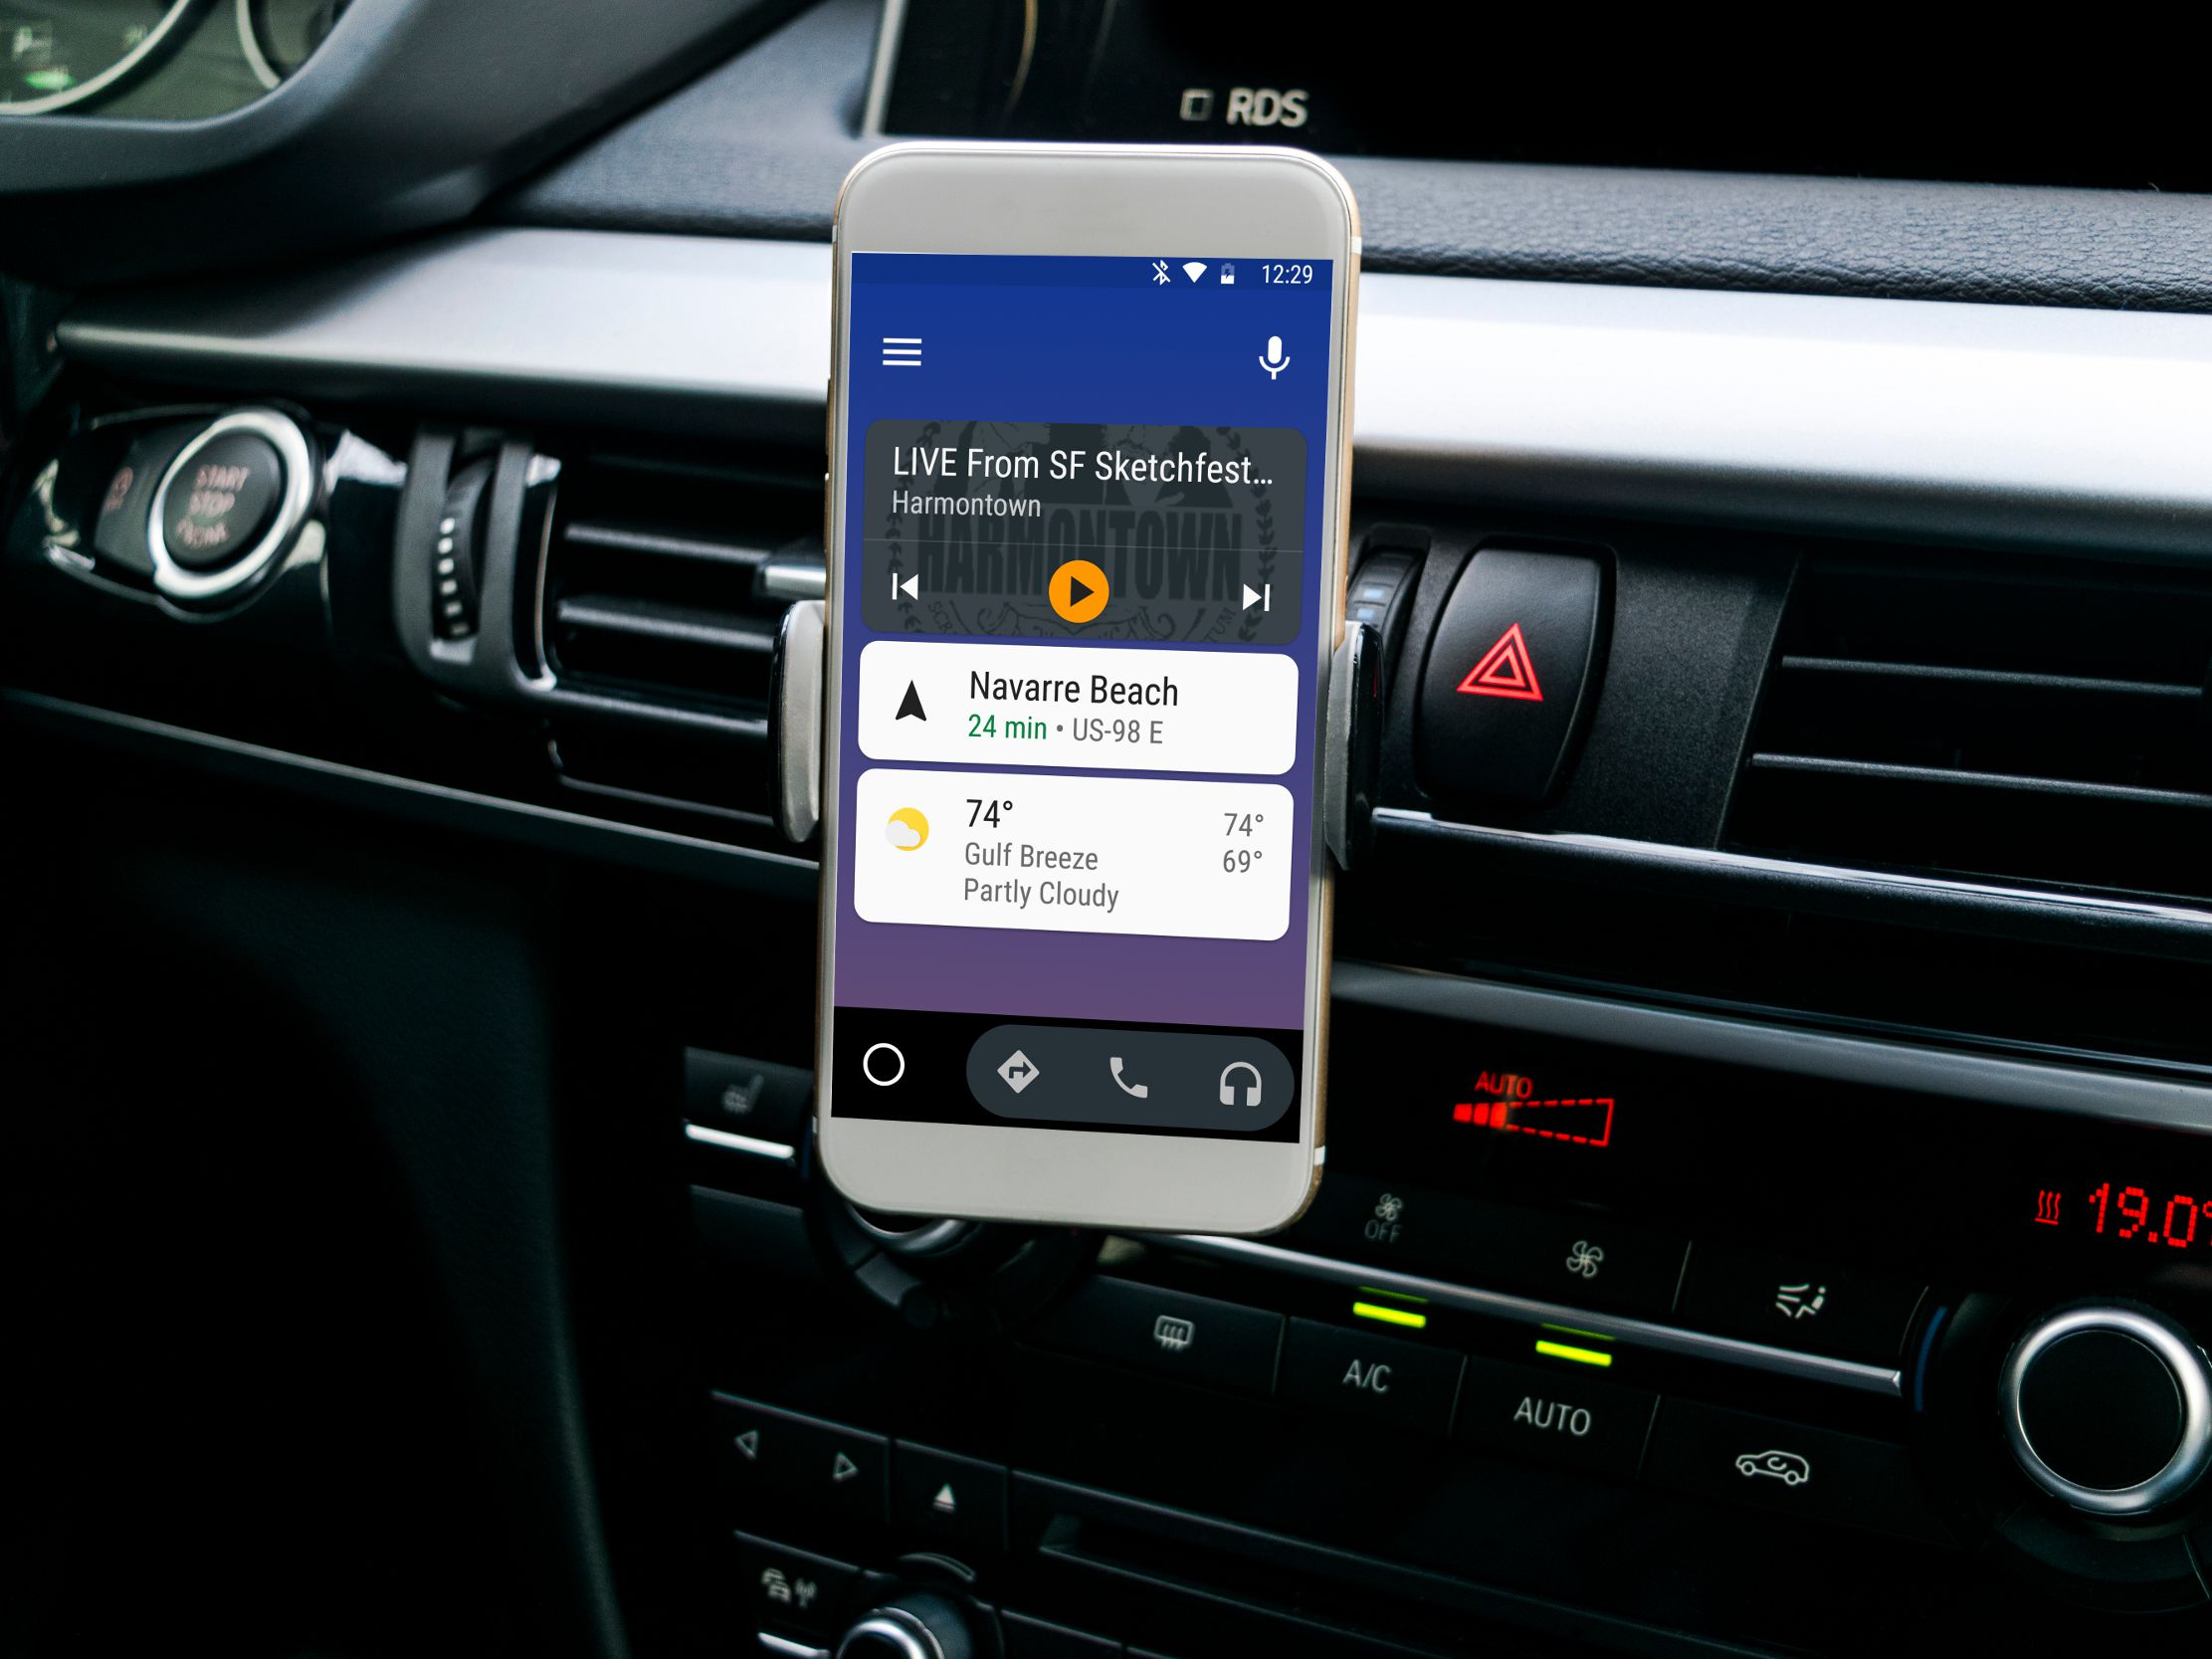 Android Auto: What It Is and How to Use It